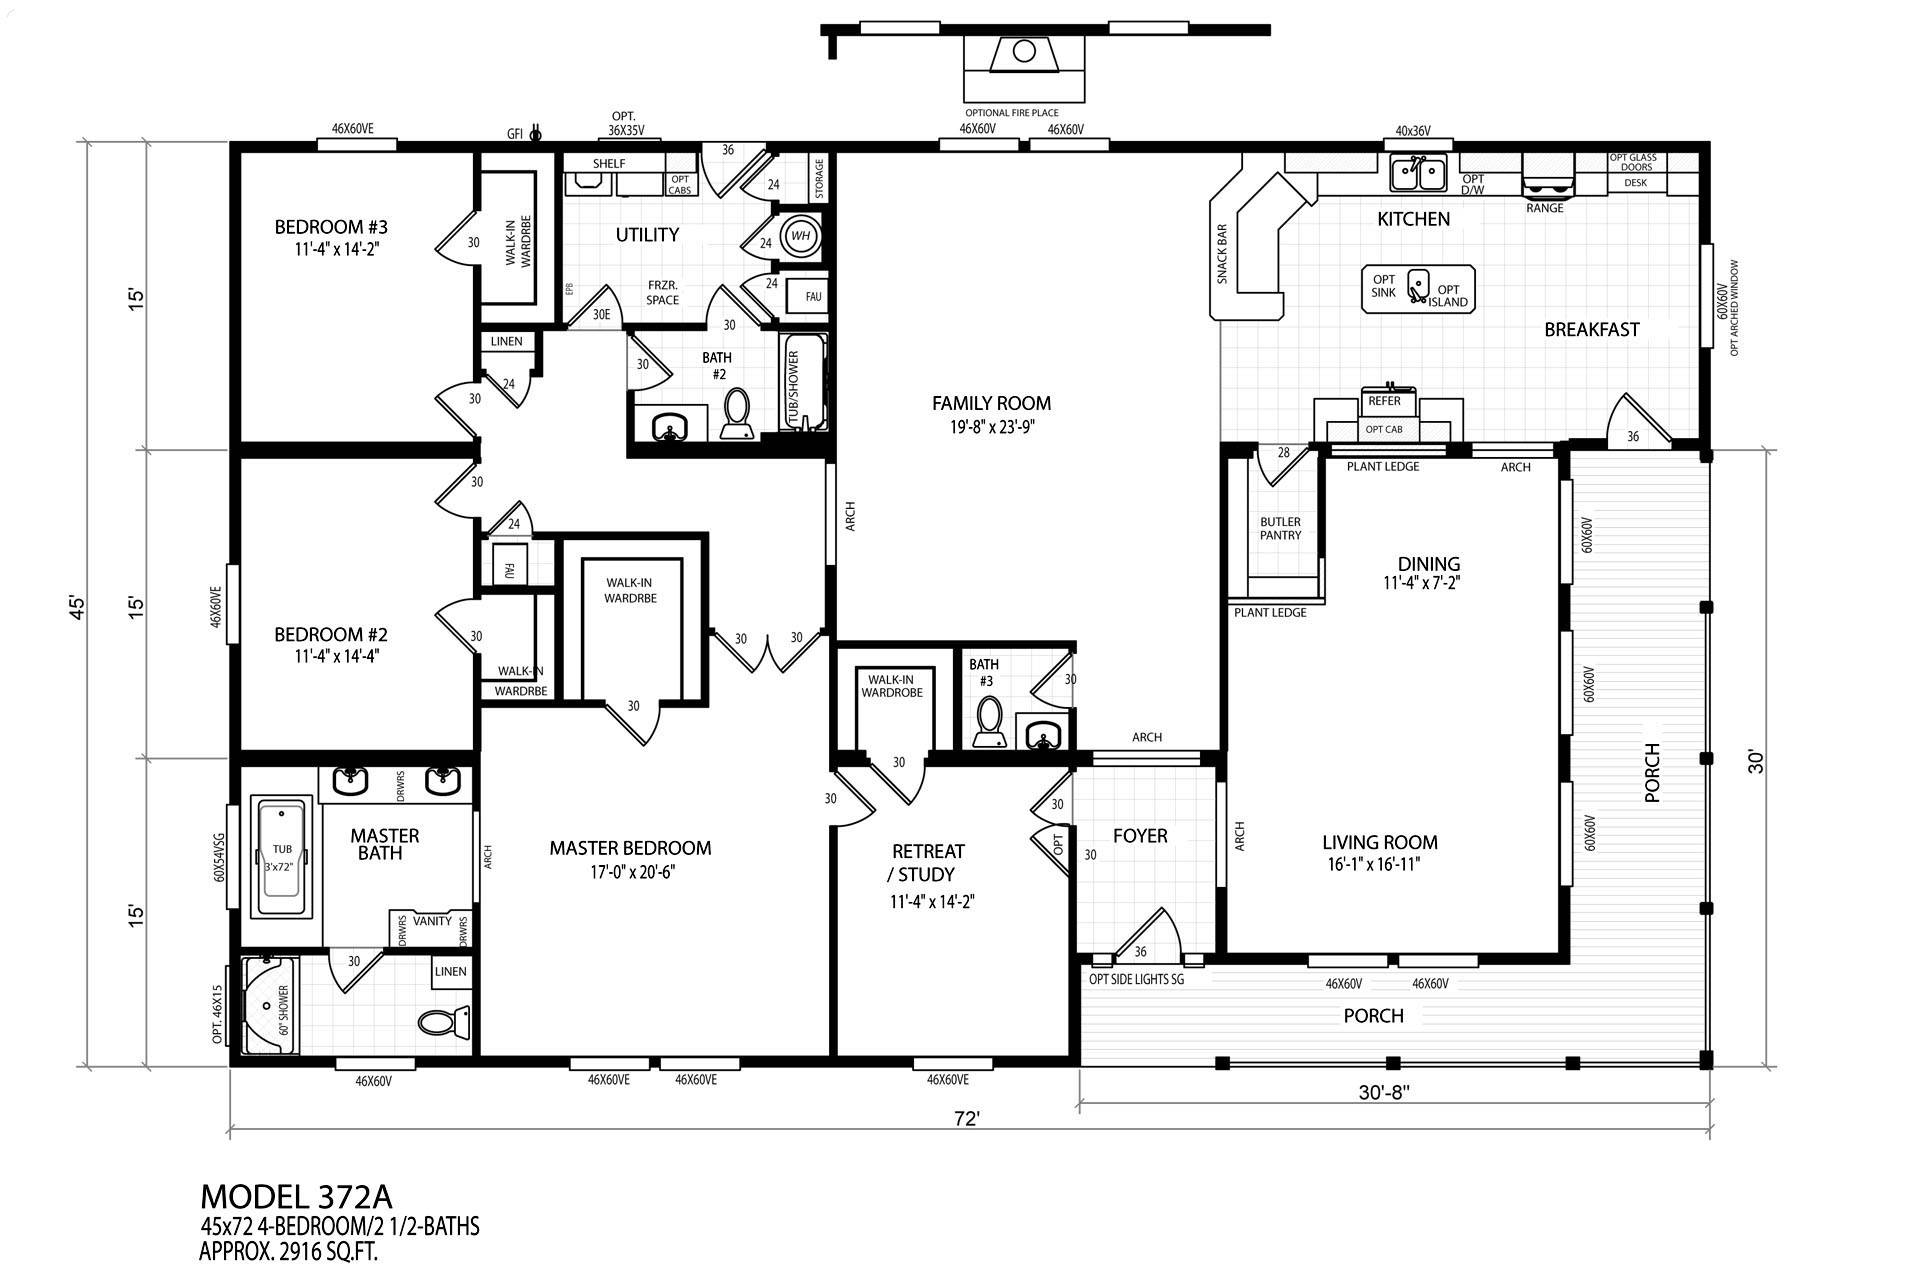 Single Wide Mobile Home Floor Plans besides How Much Will My Modular Home Cost together with 3d Double Wide Floor Plans additionally CP463 cape cod 4933 together with Professional Building Systems Northh ton III. on modular home factory